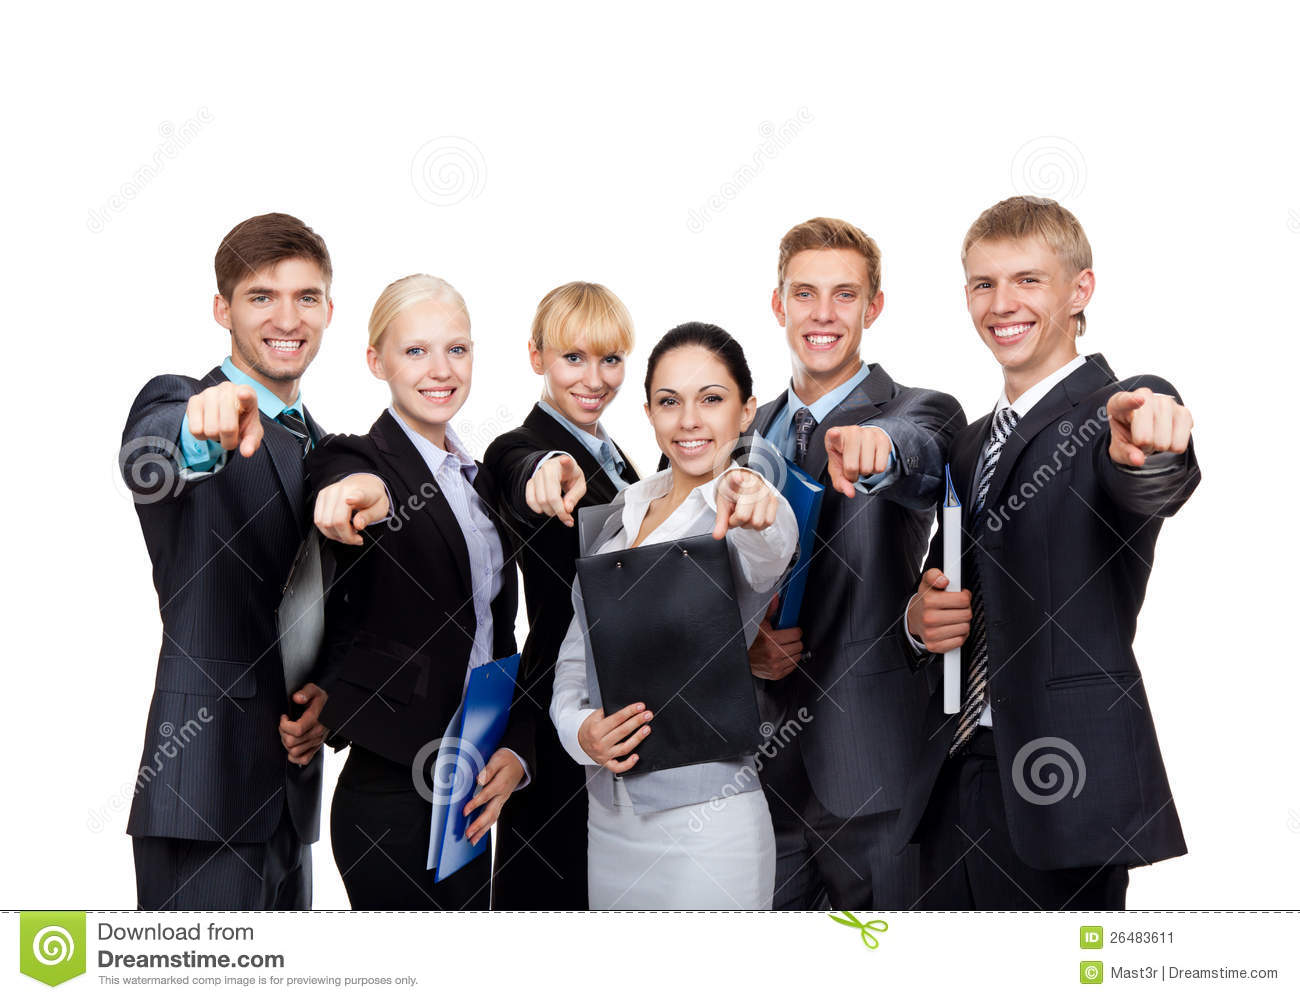 Group Of Business People Stock Image - Image: 26483611